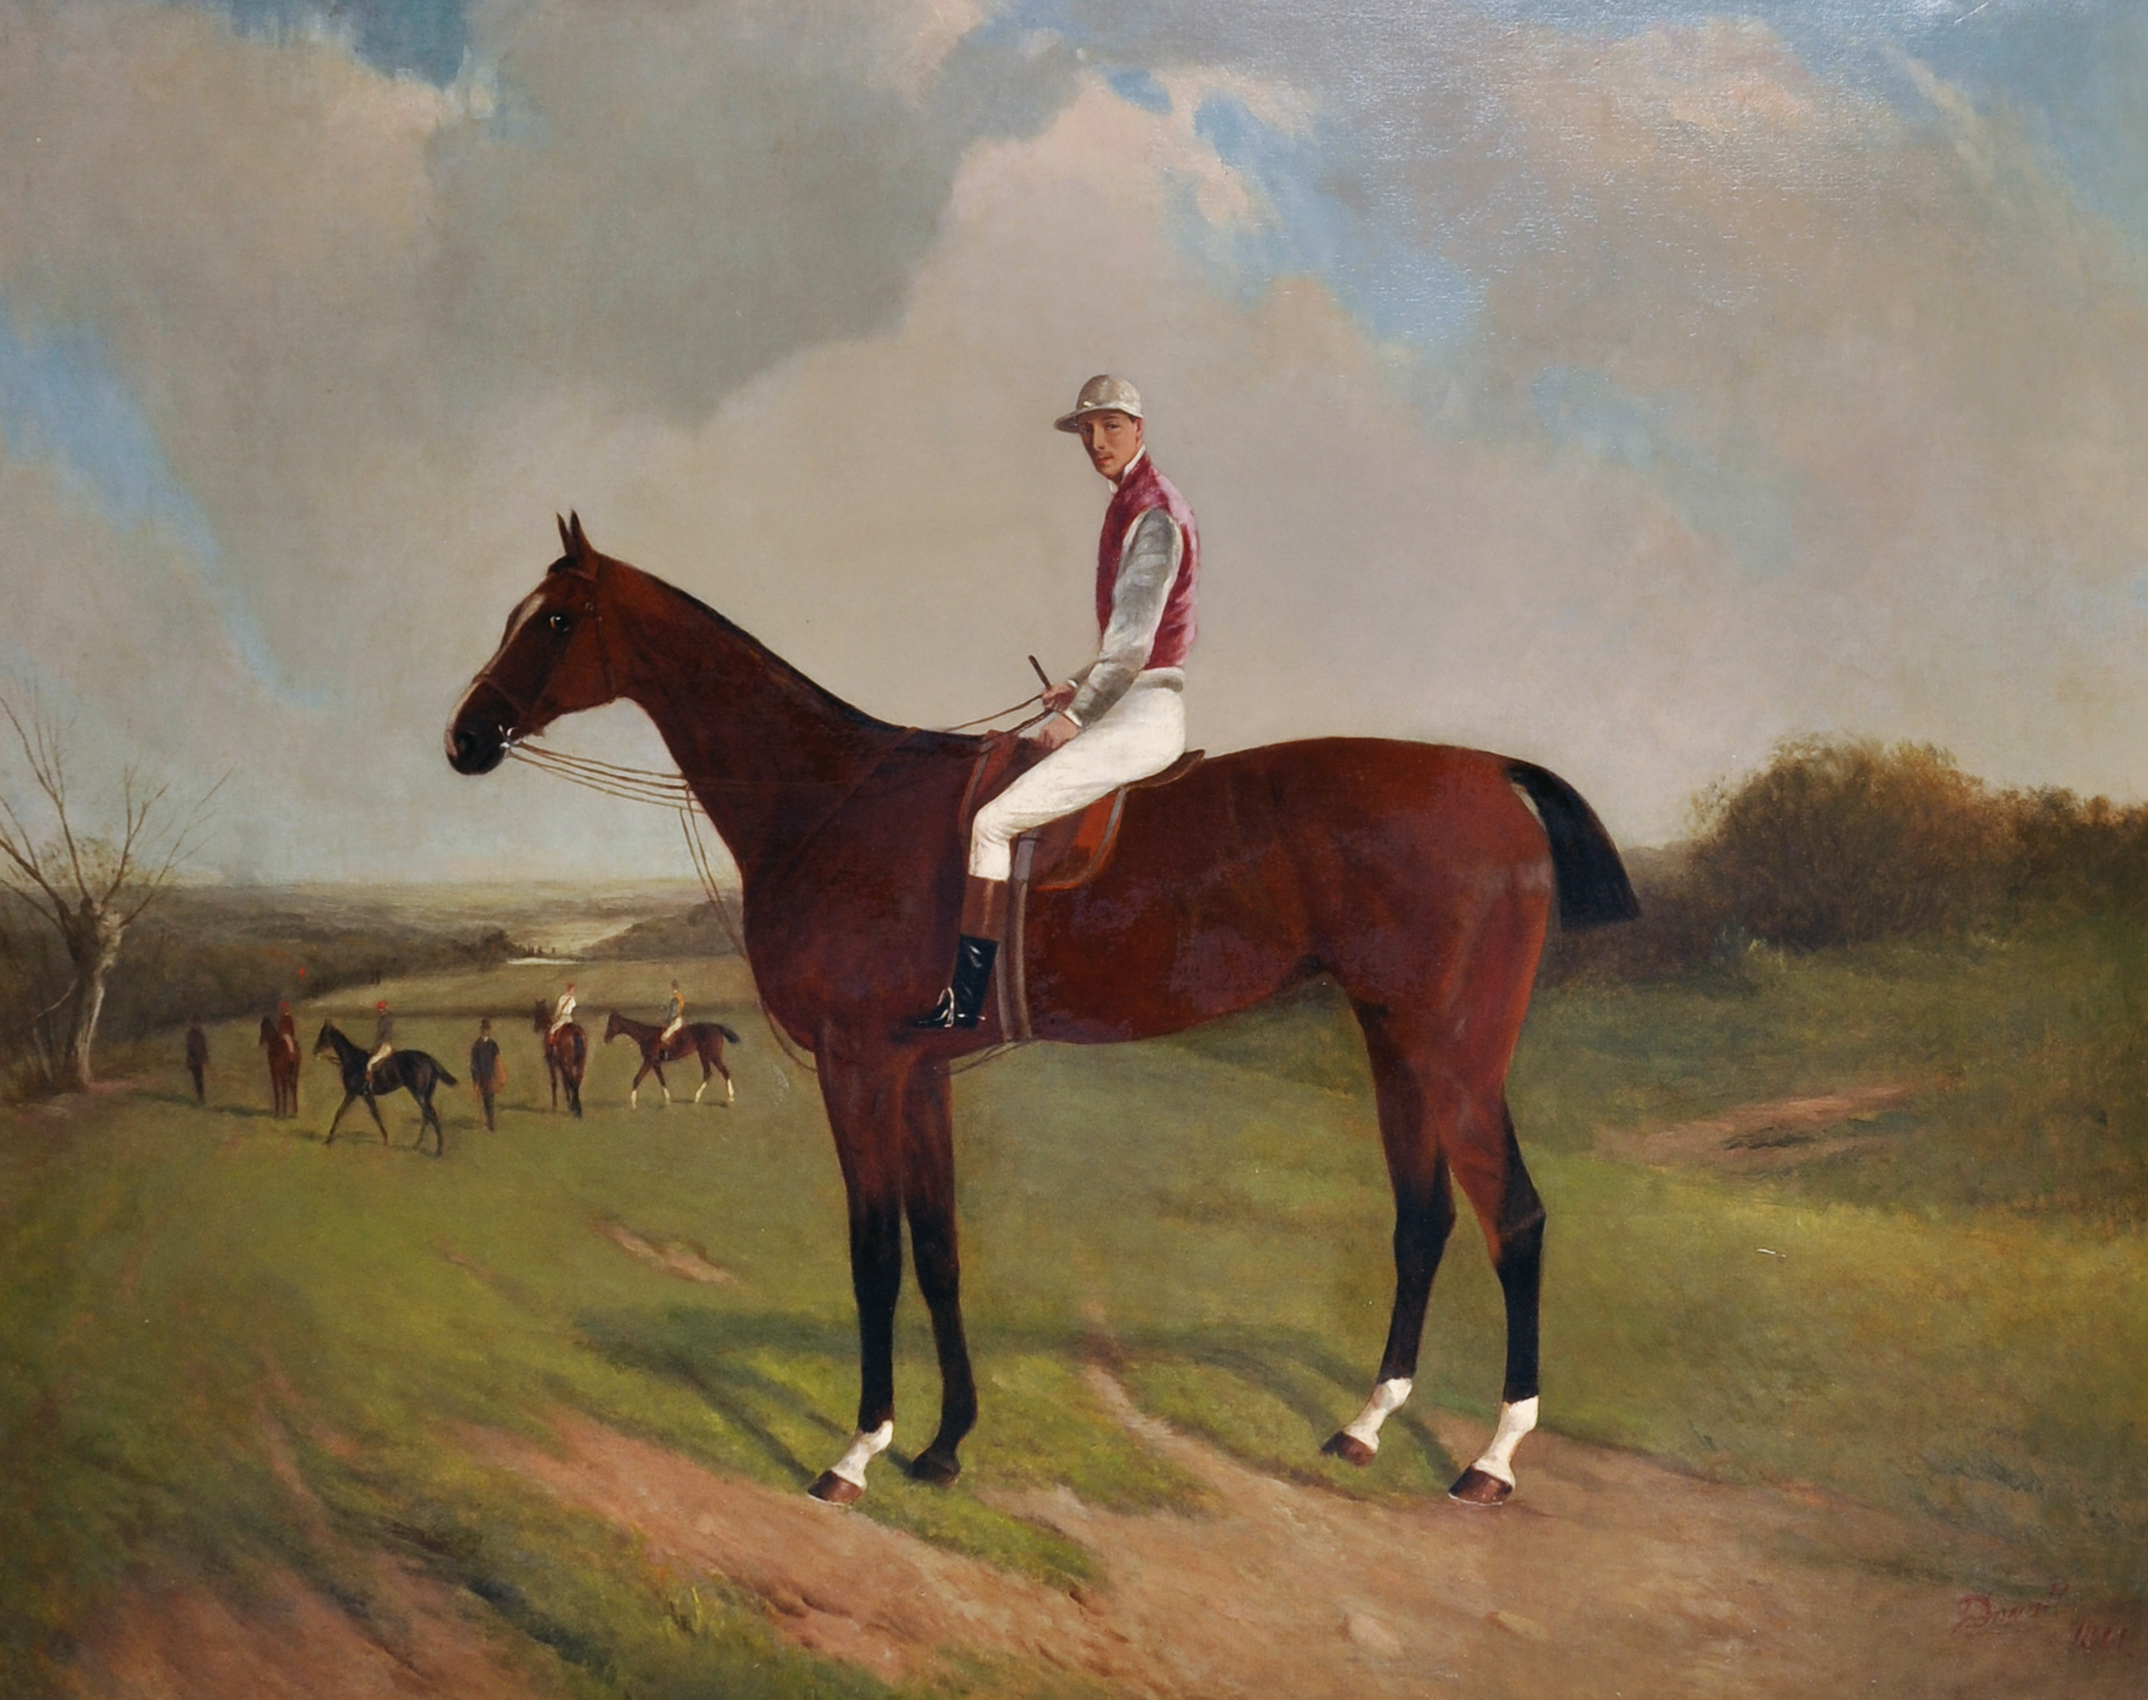 John Duvall (1816-1892) British. A Horse and Jockey in a Landscape, Oil on Canvas/Auctioneers and Valuers